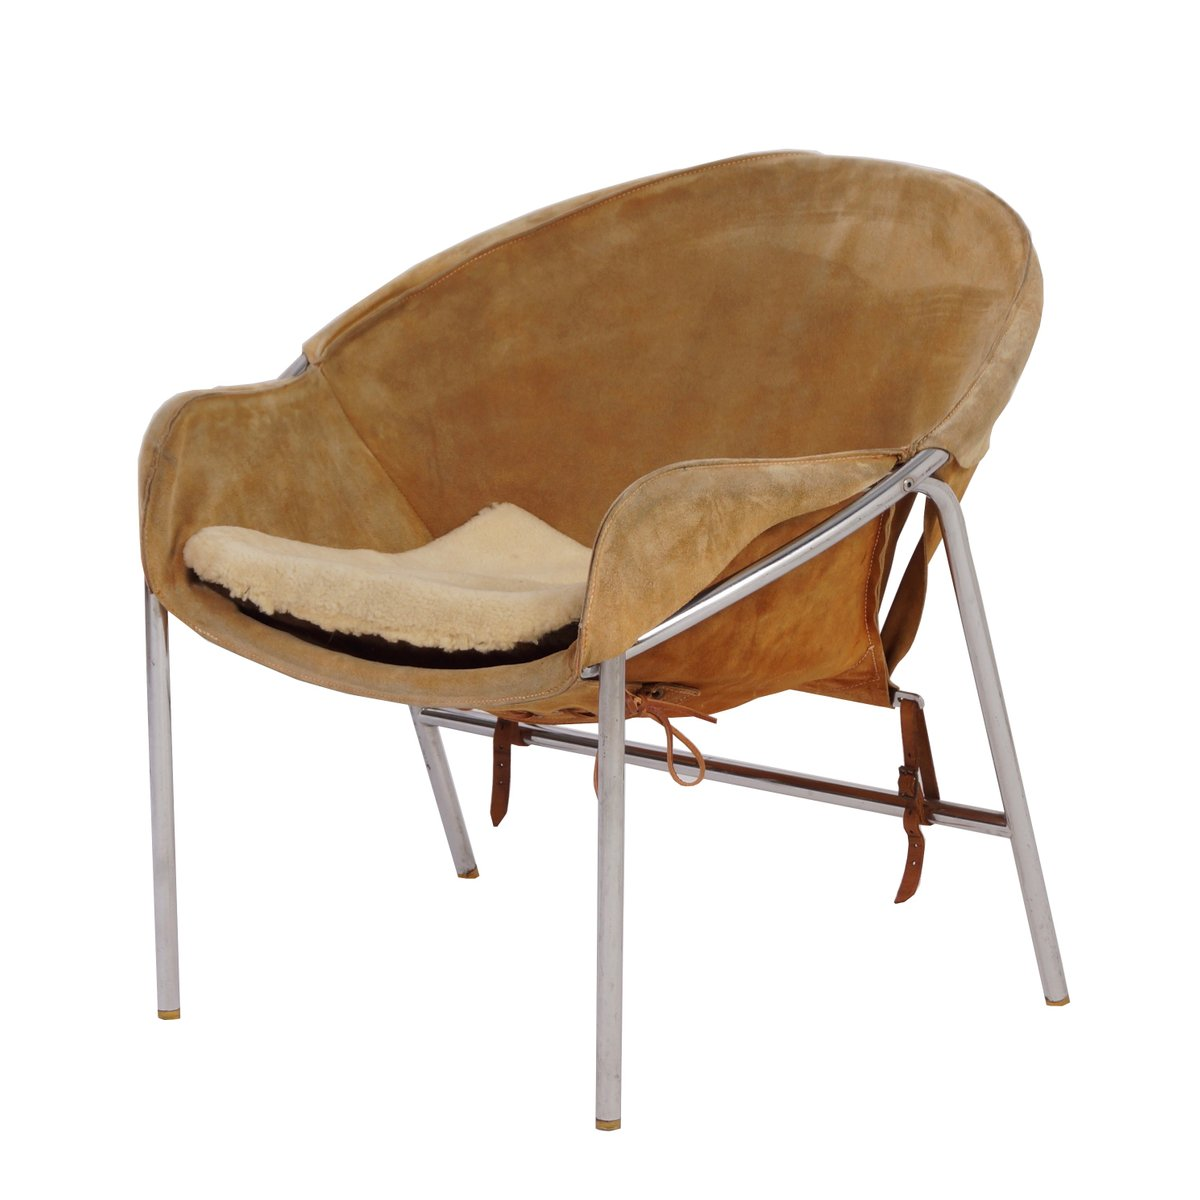 Marvelous Light Brown Suede Sling Chair By Erik Jørgensen For Bovirke, 1950s